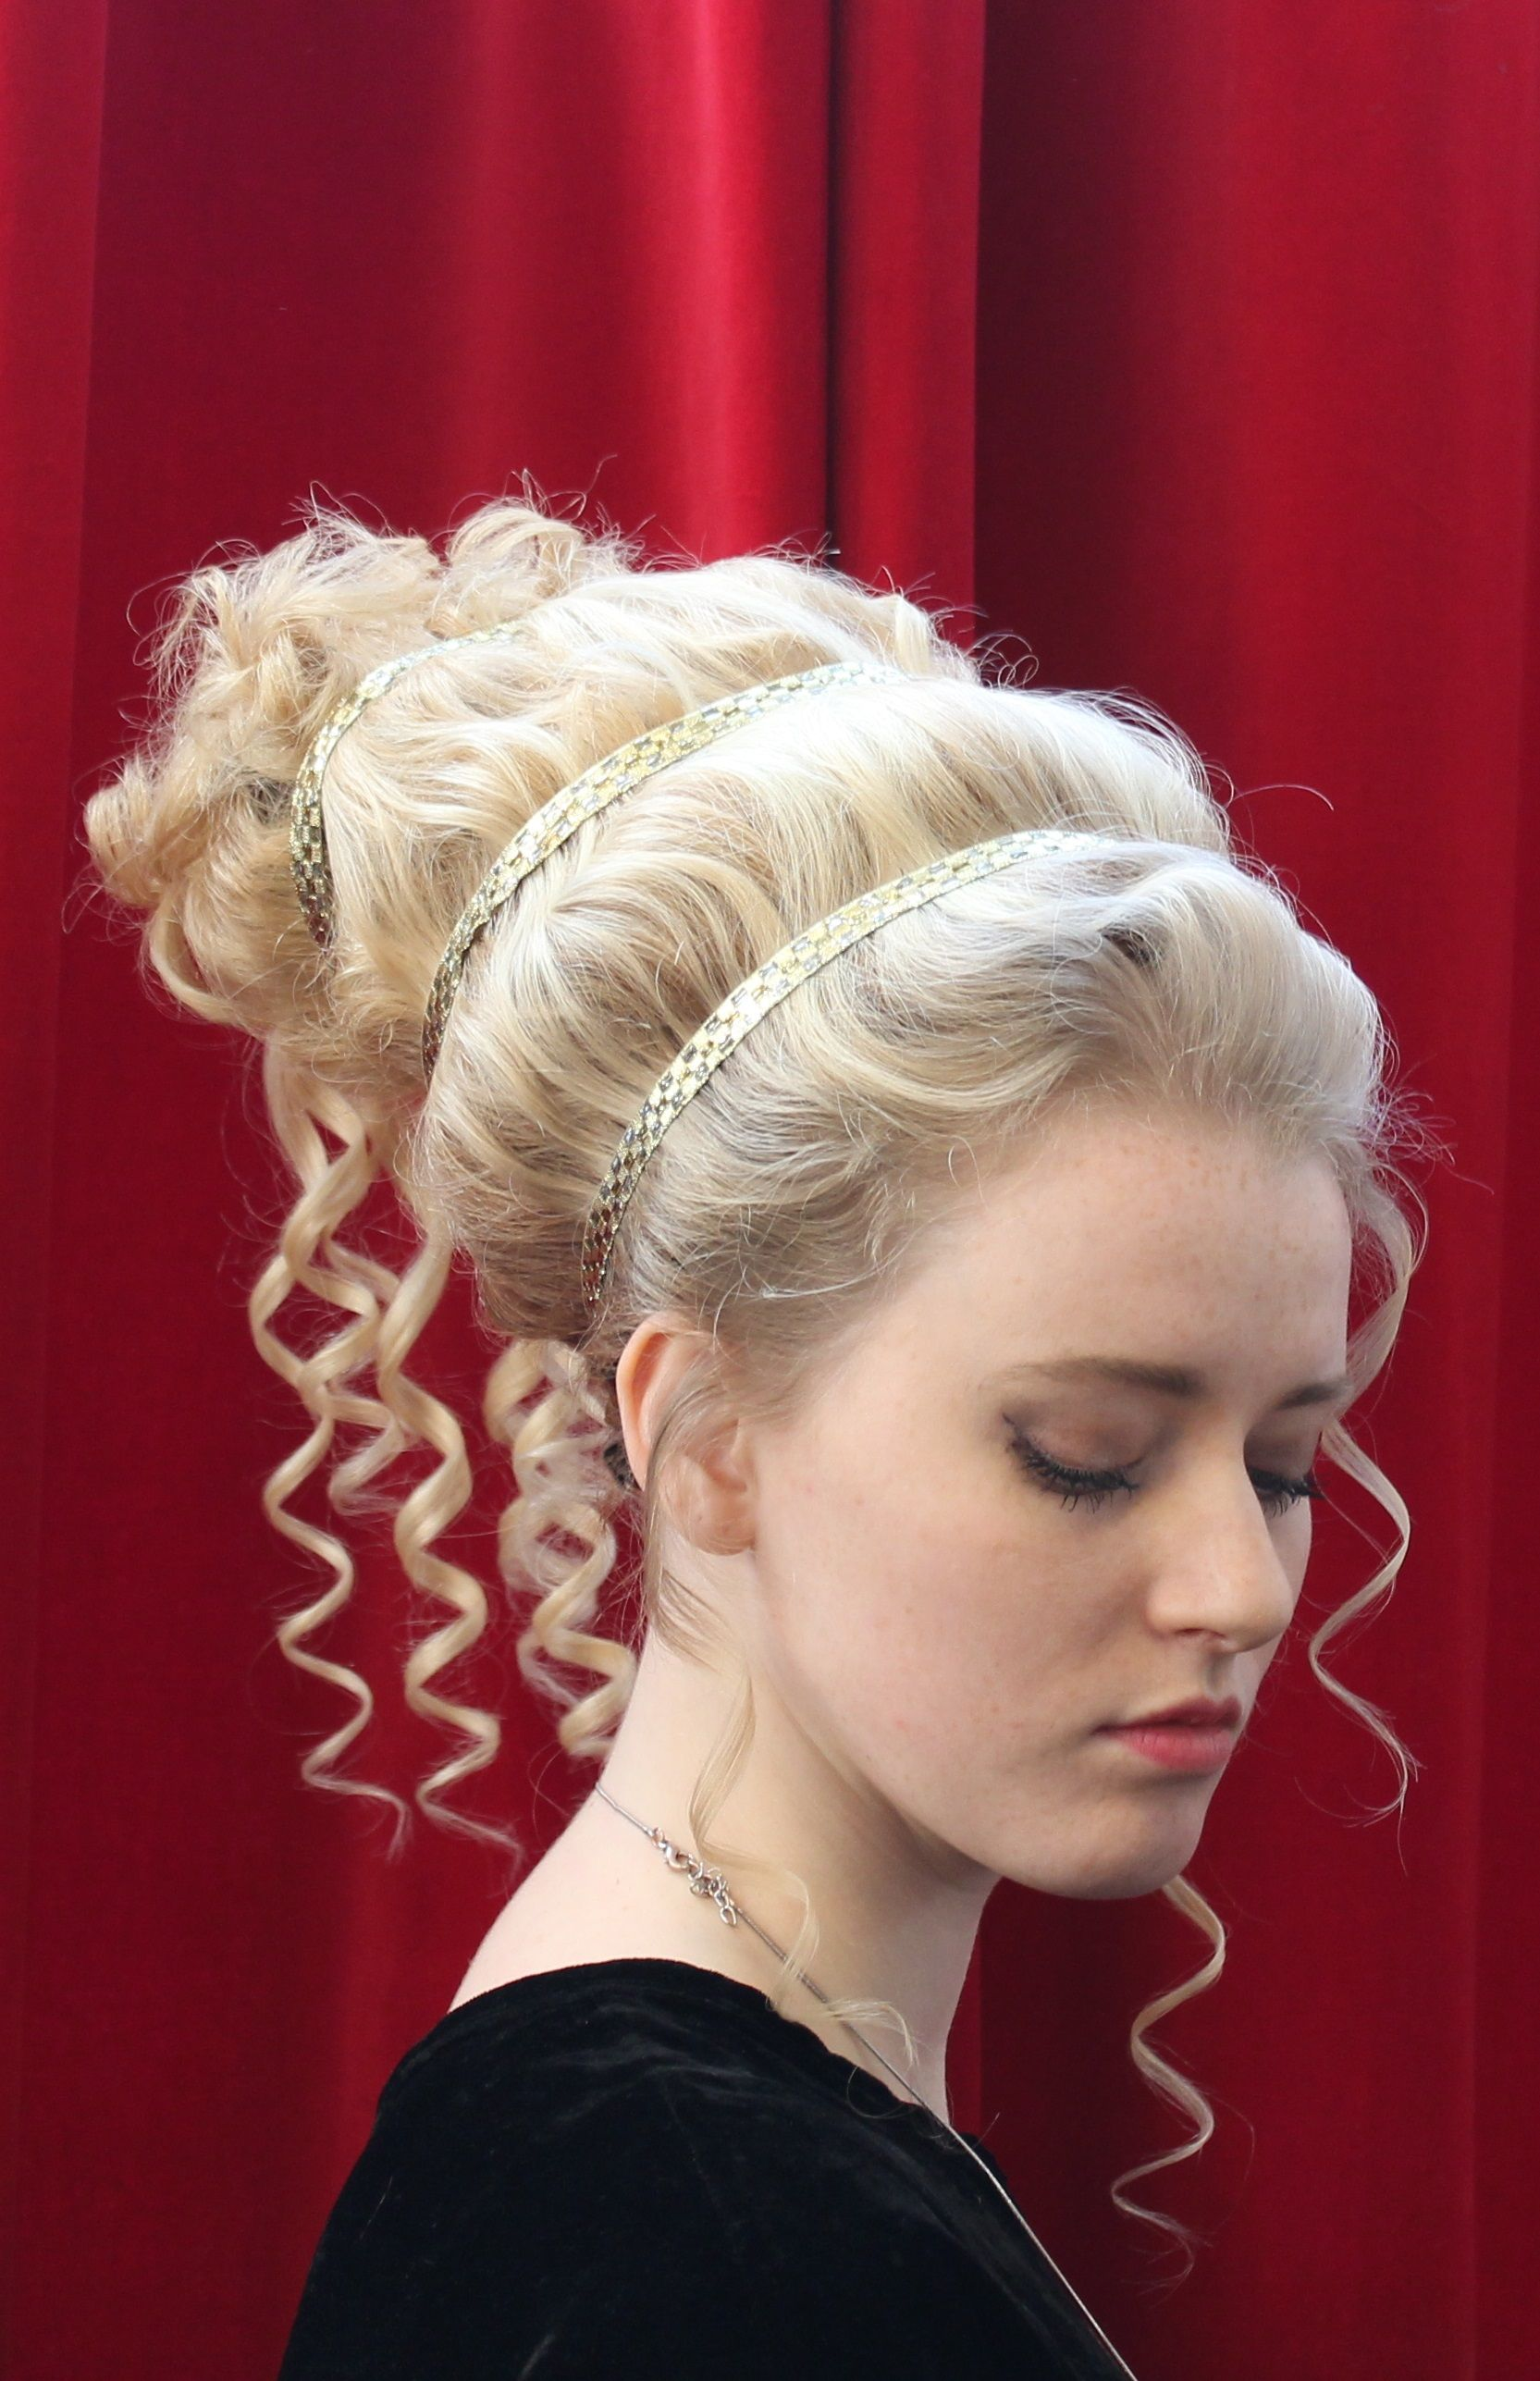 Coiffure D Epoque Grece Antique Realisee Sur Perruque Et Posee Par Cyrielle Biziere A L Atelier Du Historical Hairstyles Medieval Hairstyles Grecian Hairstyles